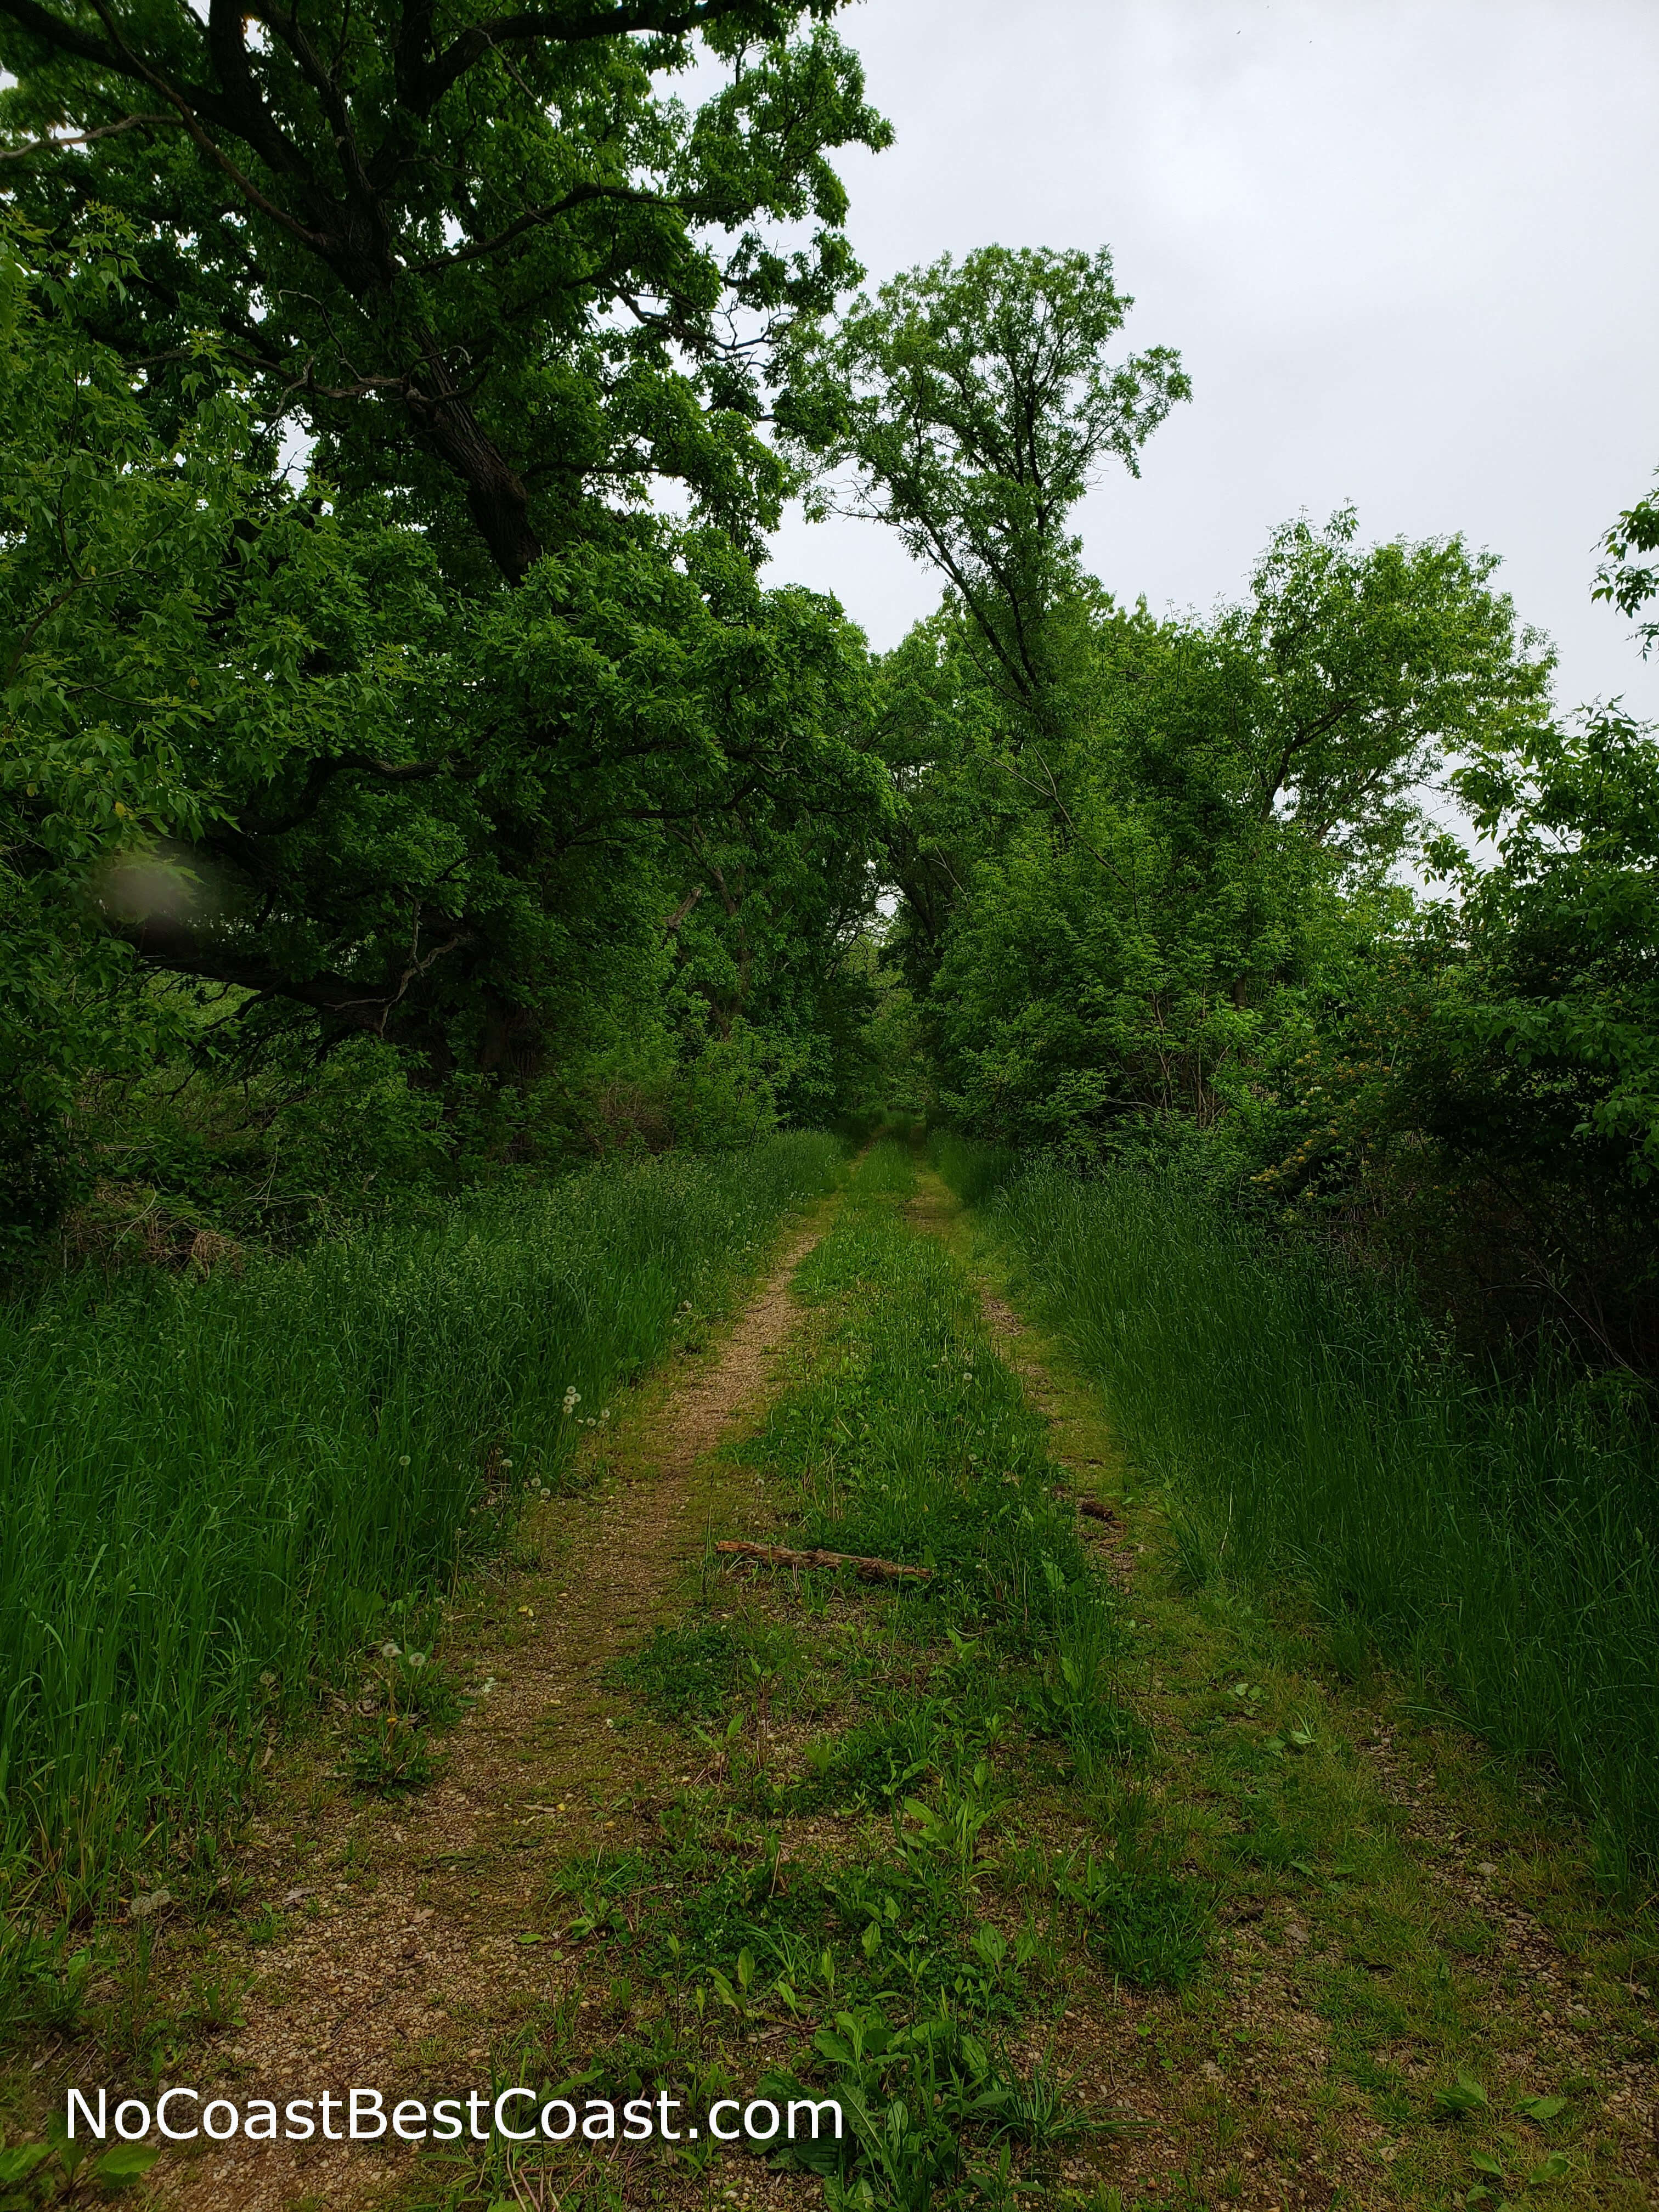 The overgrown old road that serves as a trail